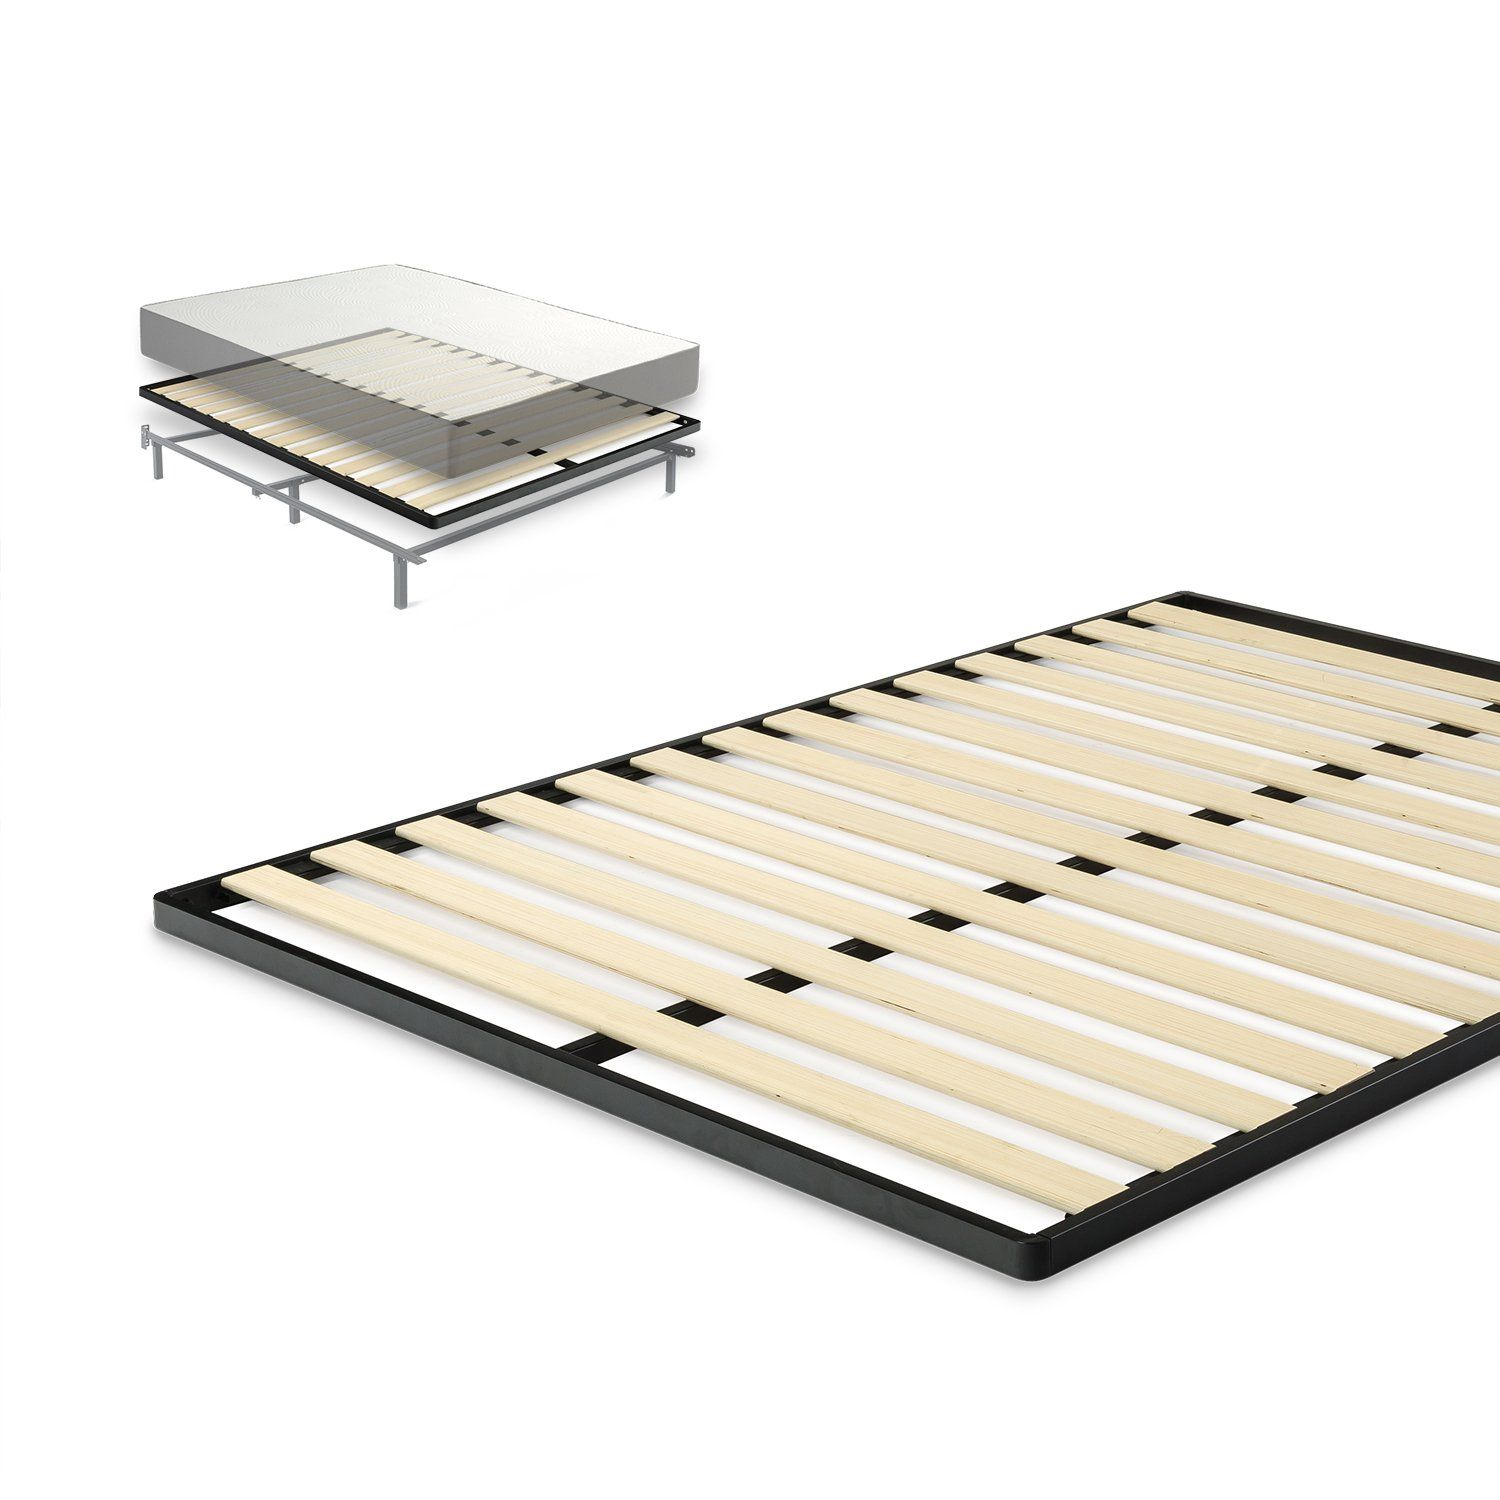 mattress profile sizes spring framesbox foundation picture low of frame in twin bed lovely